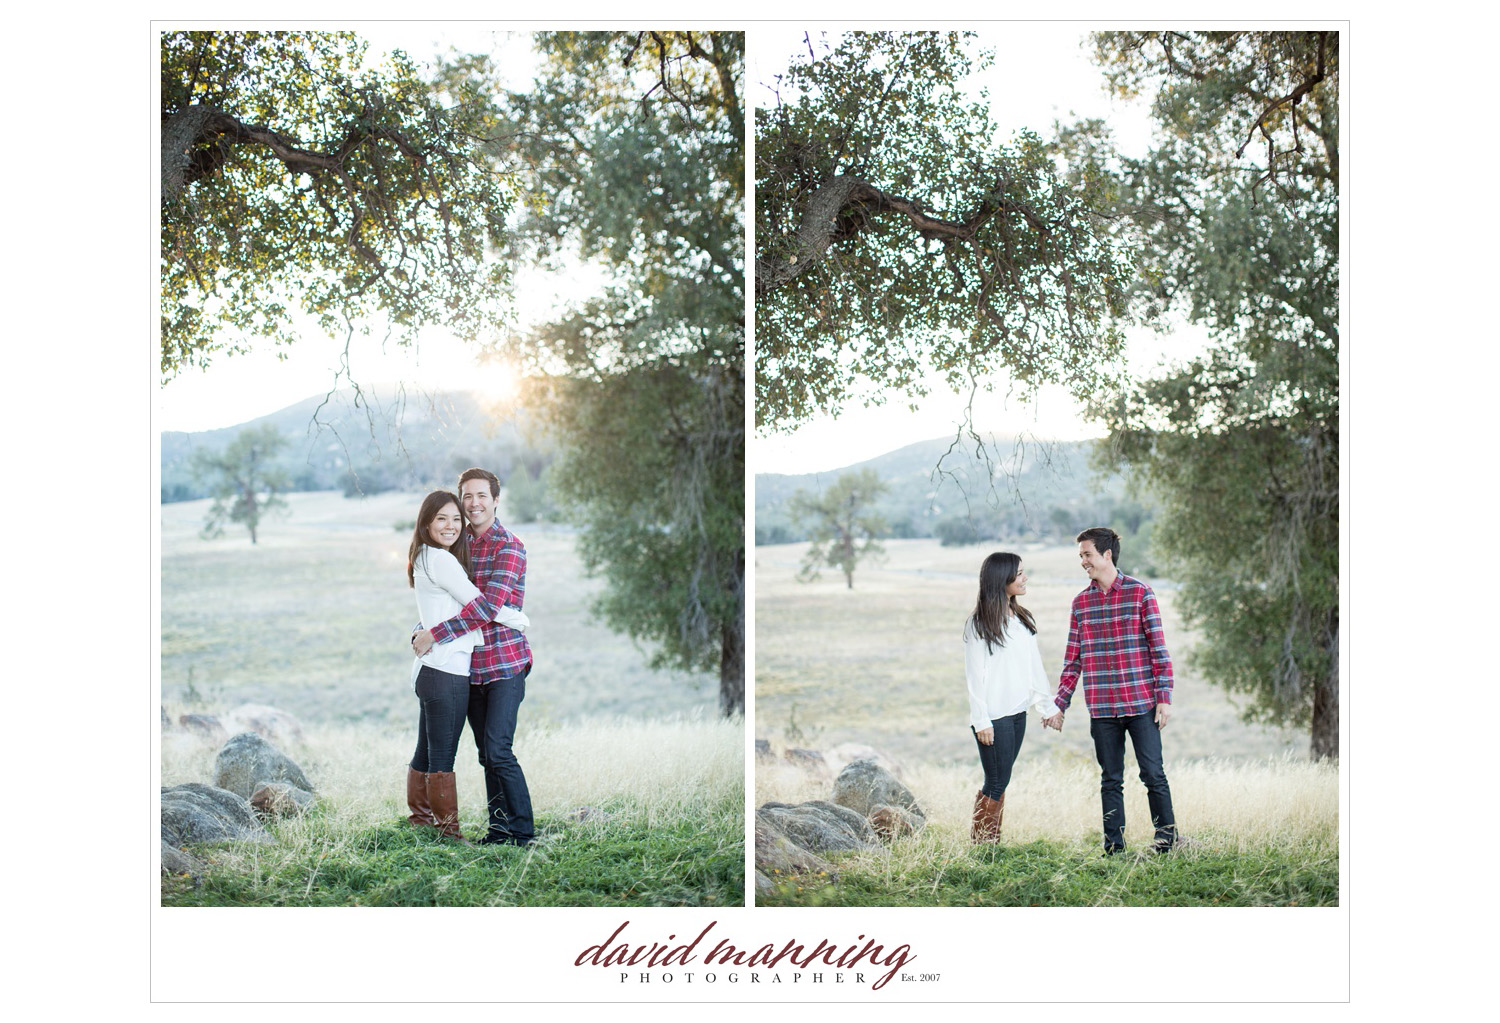 Del-Mar-Ramona-Julian-Engagement-Photos-David-Manning-Photographers-0009.jpg